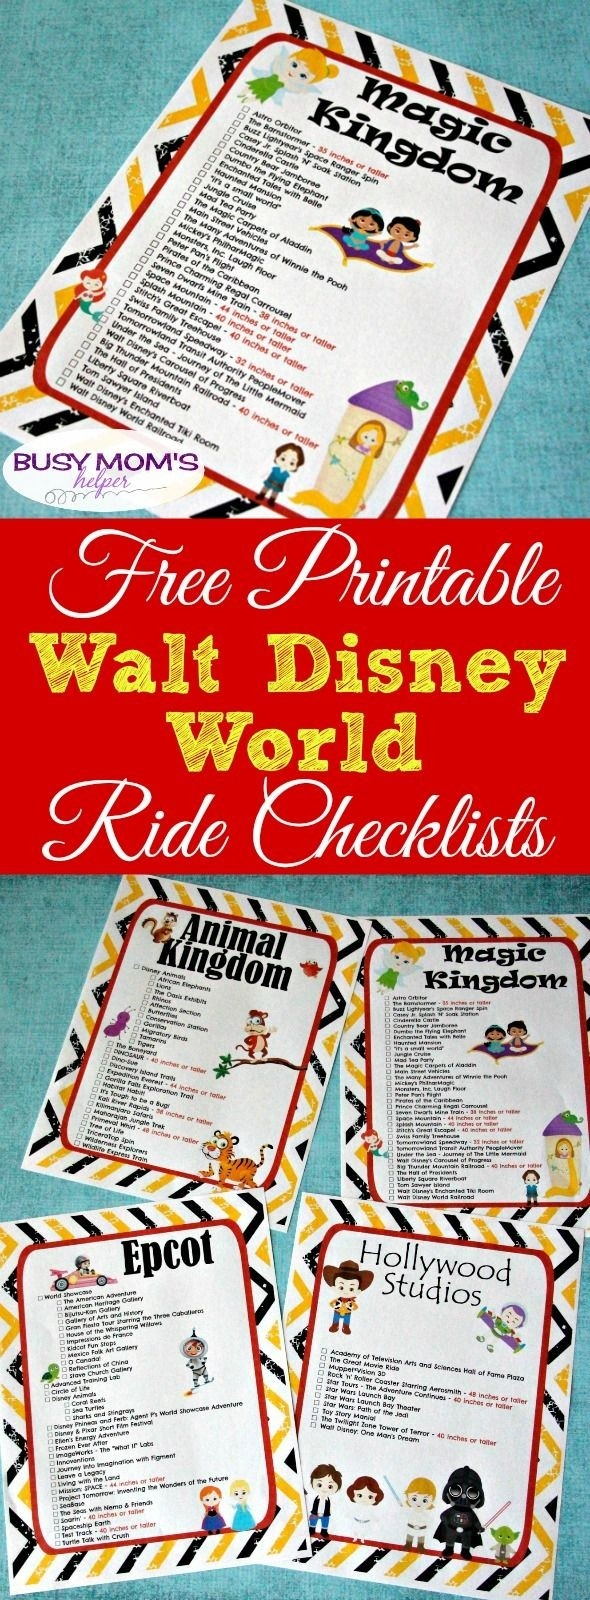 Free Printable Walt Disney World Ride Checklists | Disney  Disney World Attractions Printable List 2020